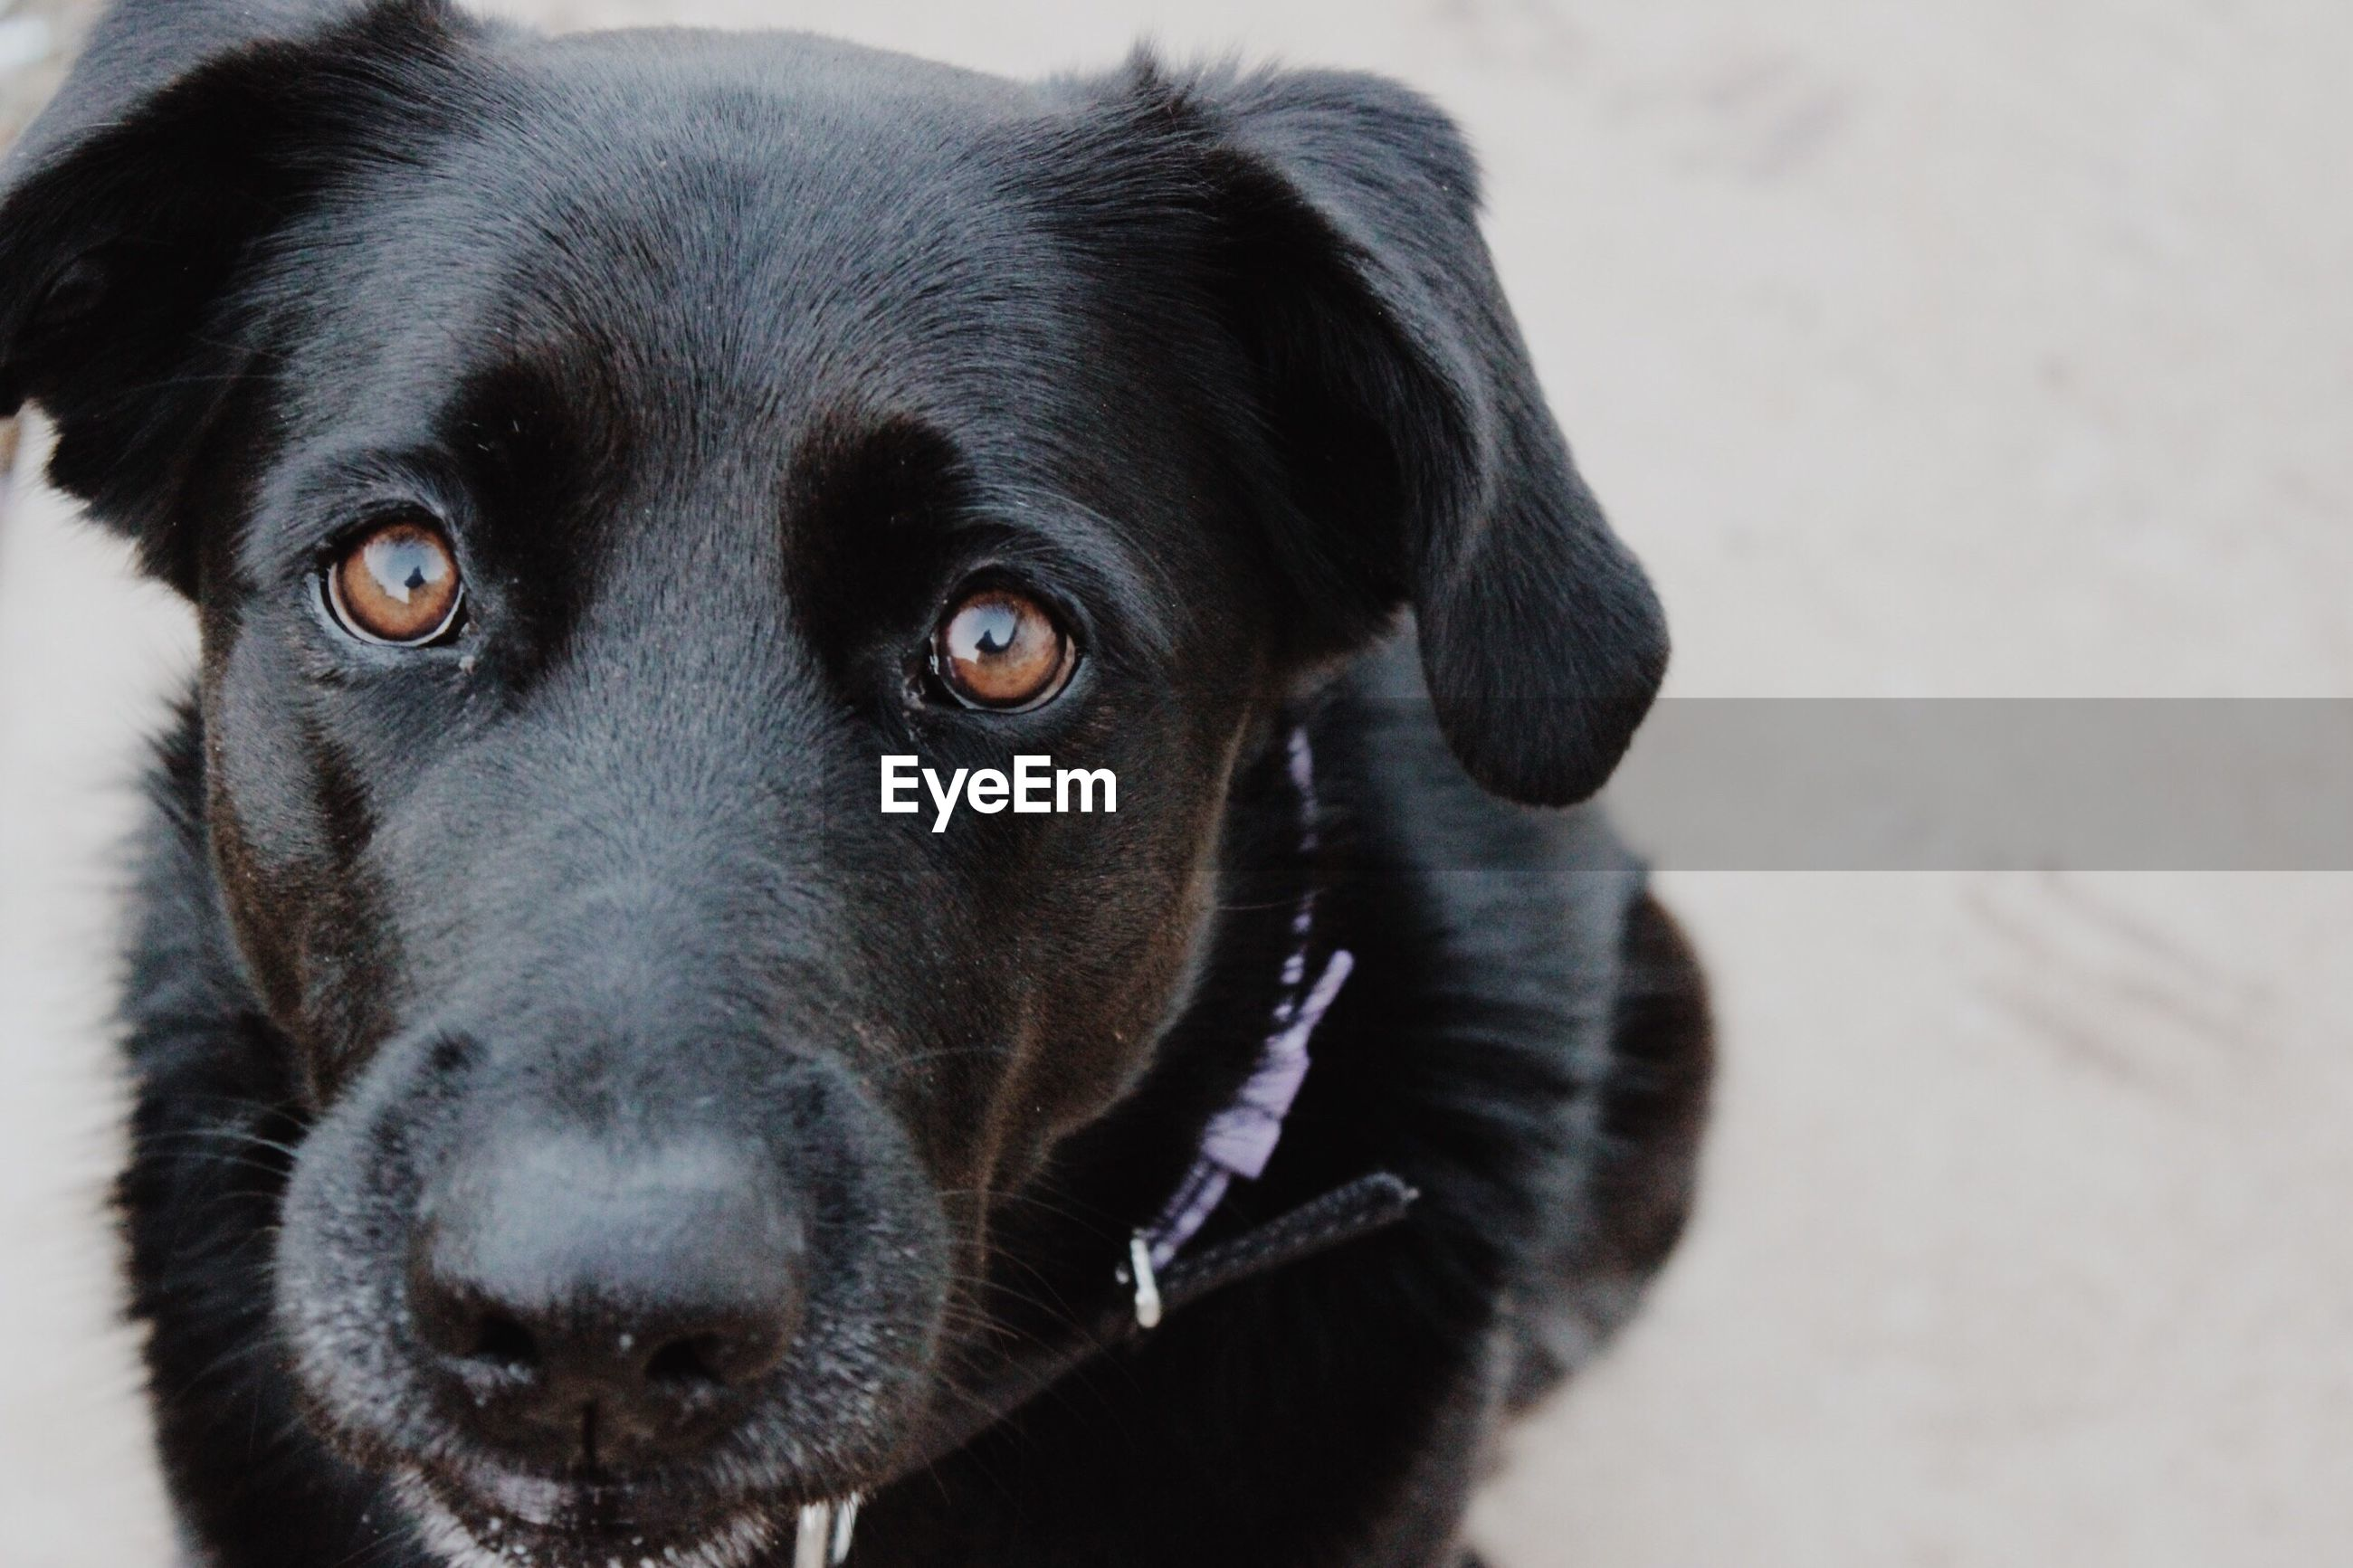 dog, pets, one animal, domestic animals, black color, mammal, portrait, animal themes, looking at camera, close-up, focus on foreground, no people, outdoors, day